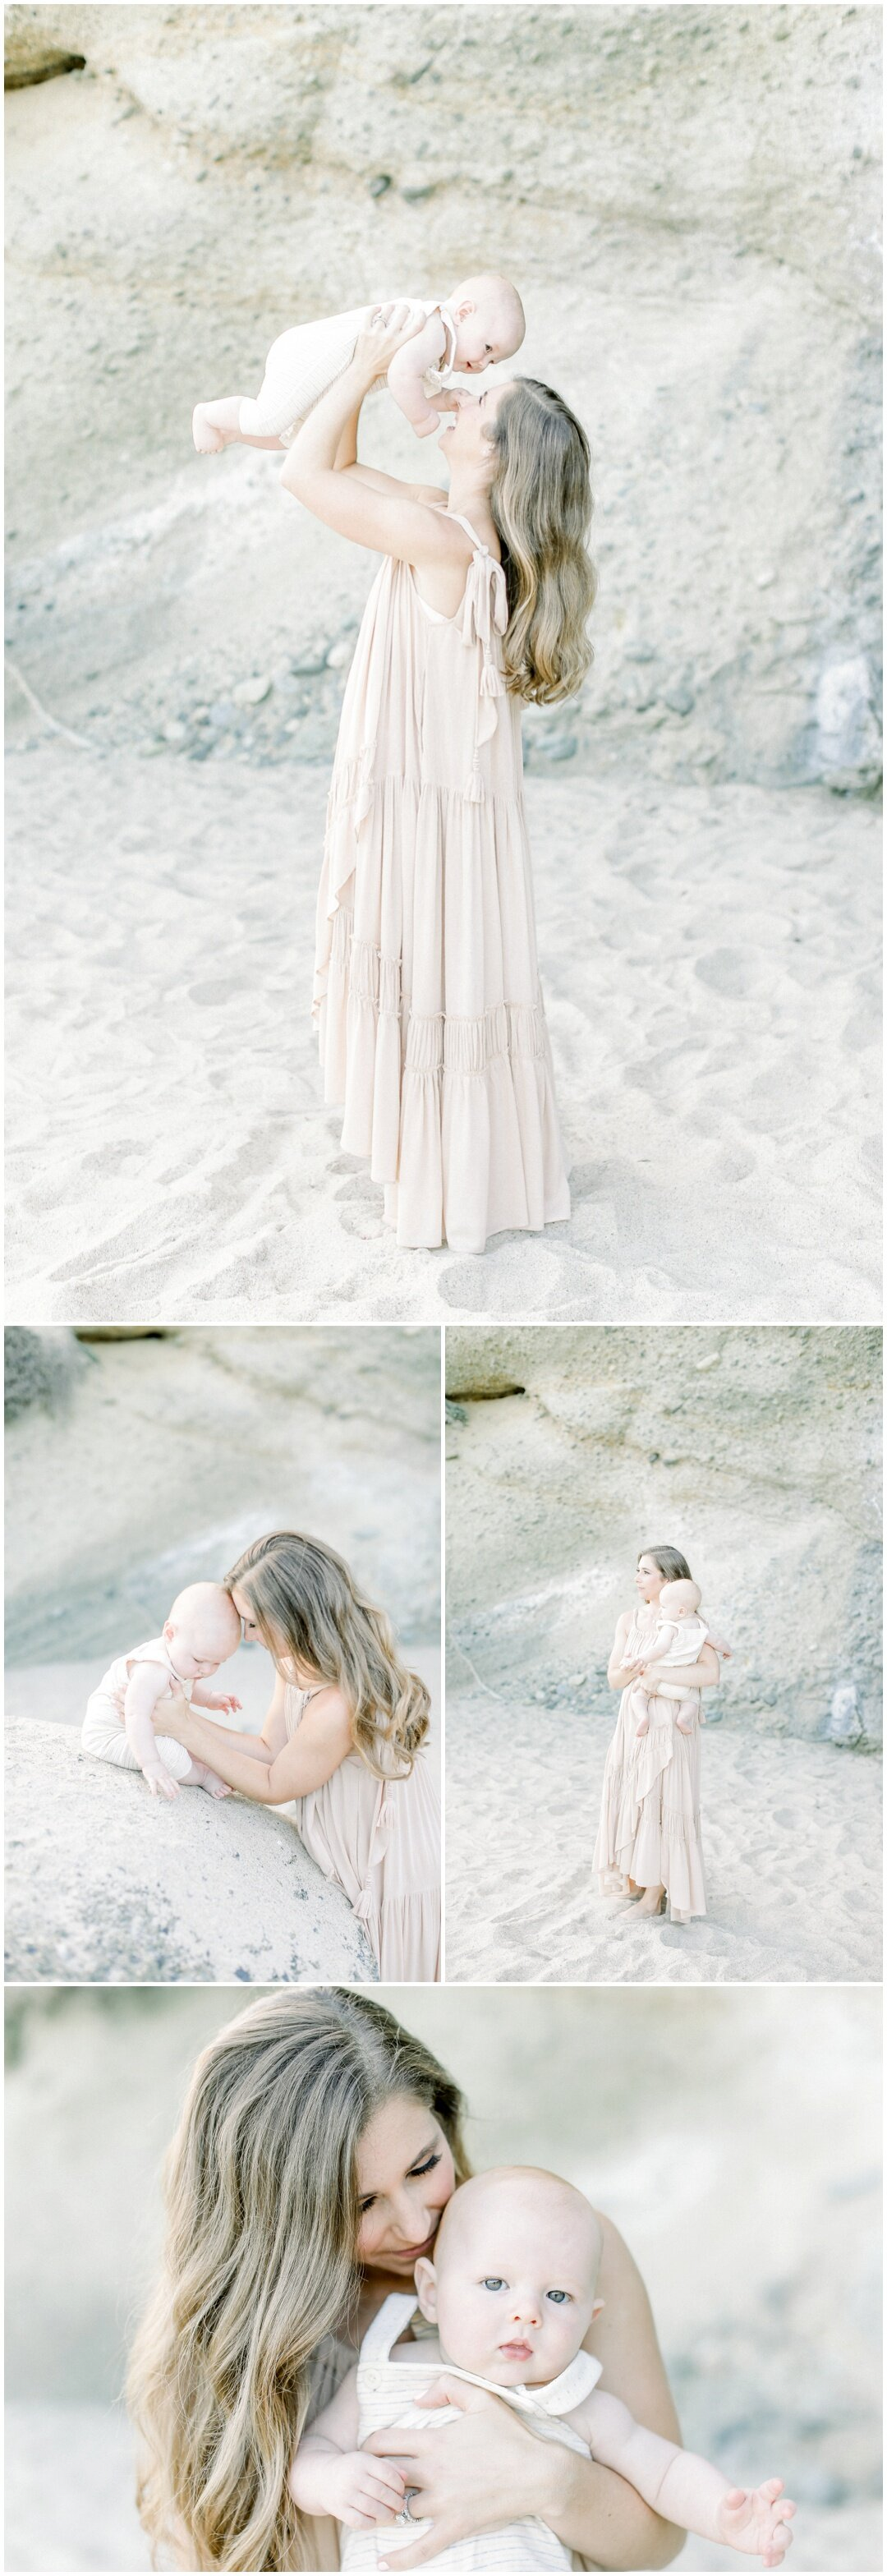 Newport+Beach+Newborn+Maternity+Photographer+Orange+County+Family+Photographer+Cori+Kleckner+Photography+Forgatch+Family+Matt+Kelley+Jack+Forgatch+_4423.jpg